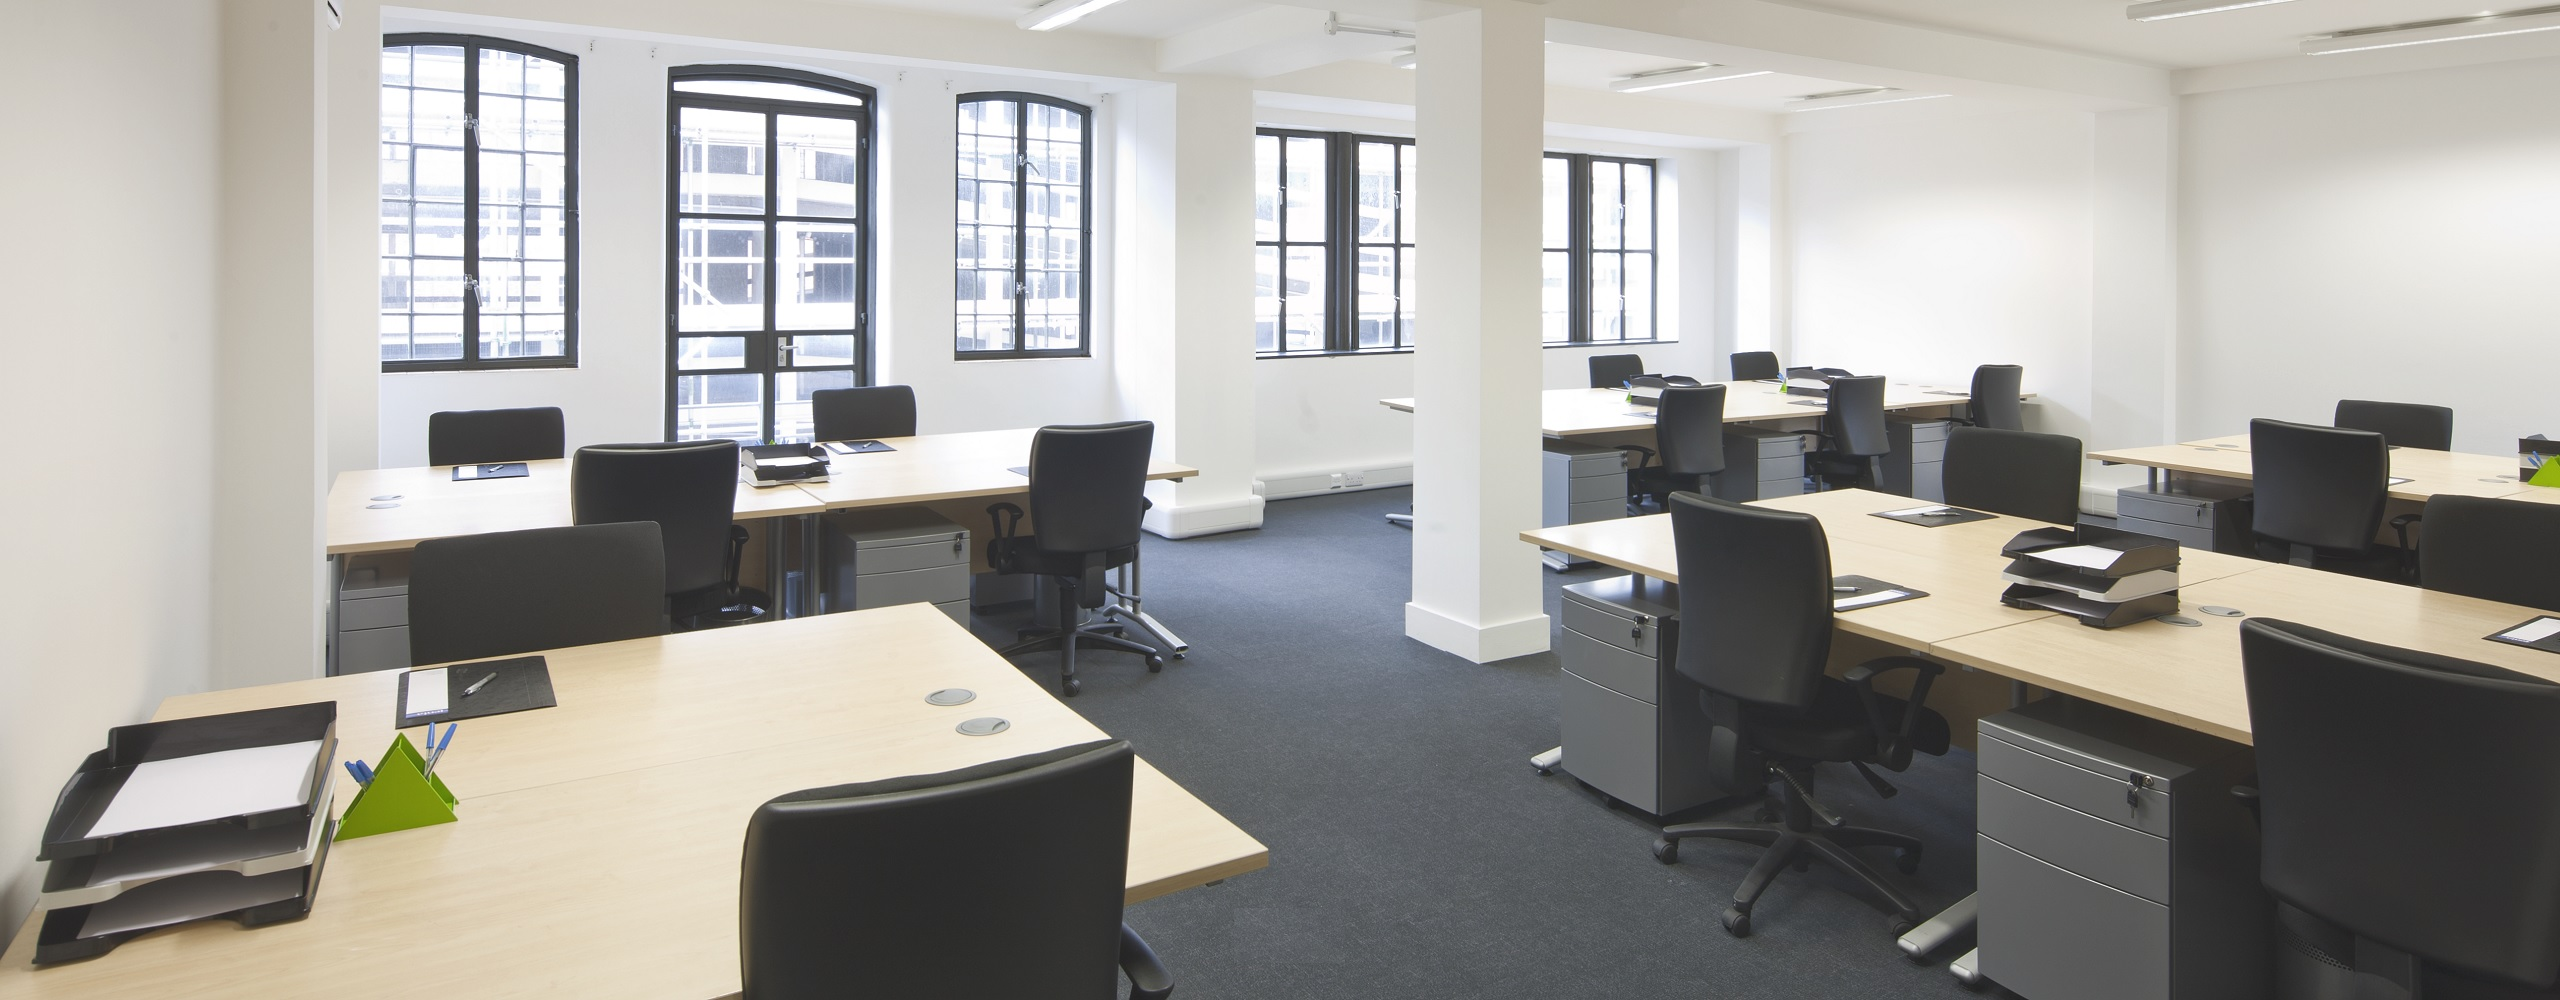 Picking the right office for your business 5 things to for Office space pics